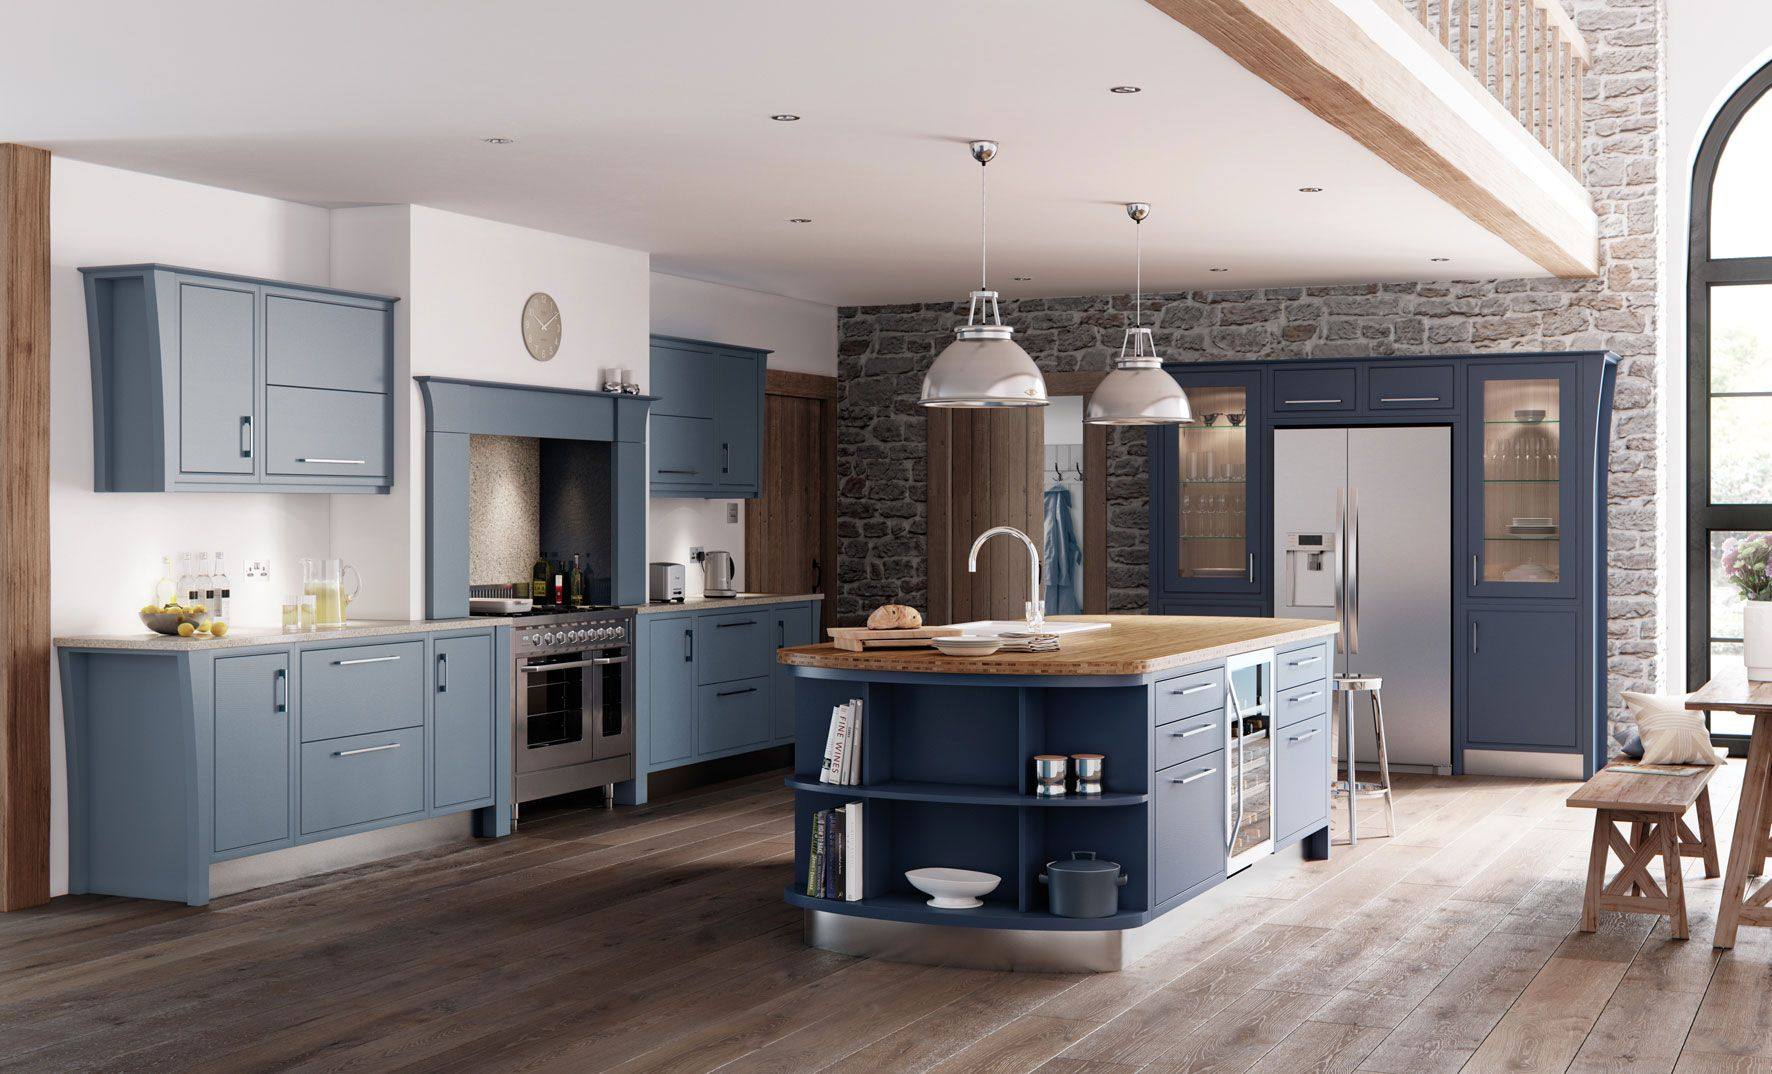 The Kensington Painted Kitchen in Denim and Midnight is